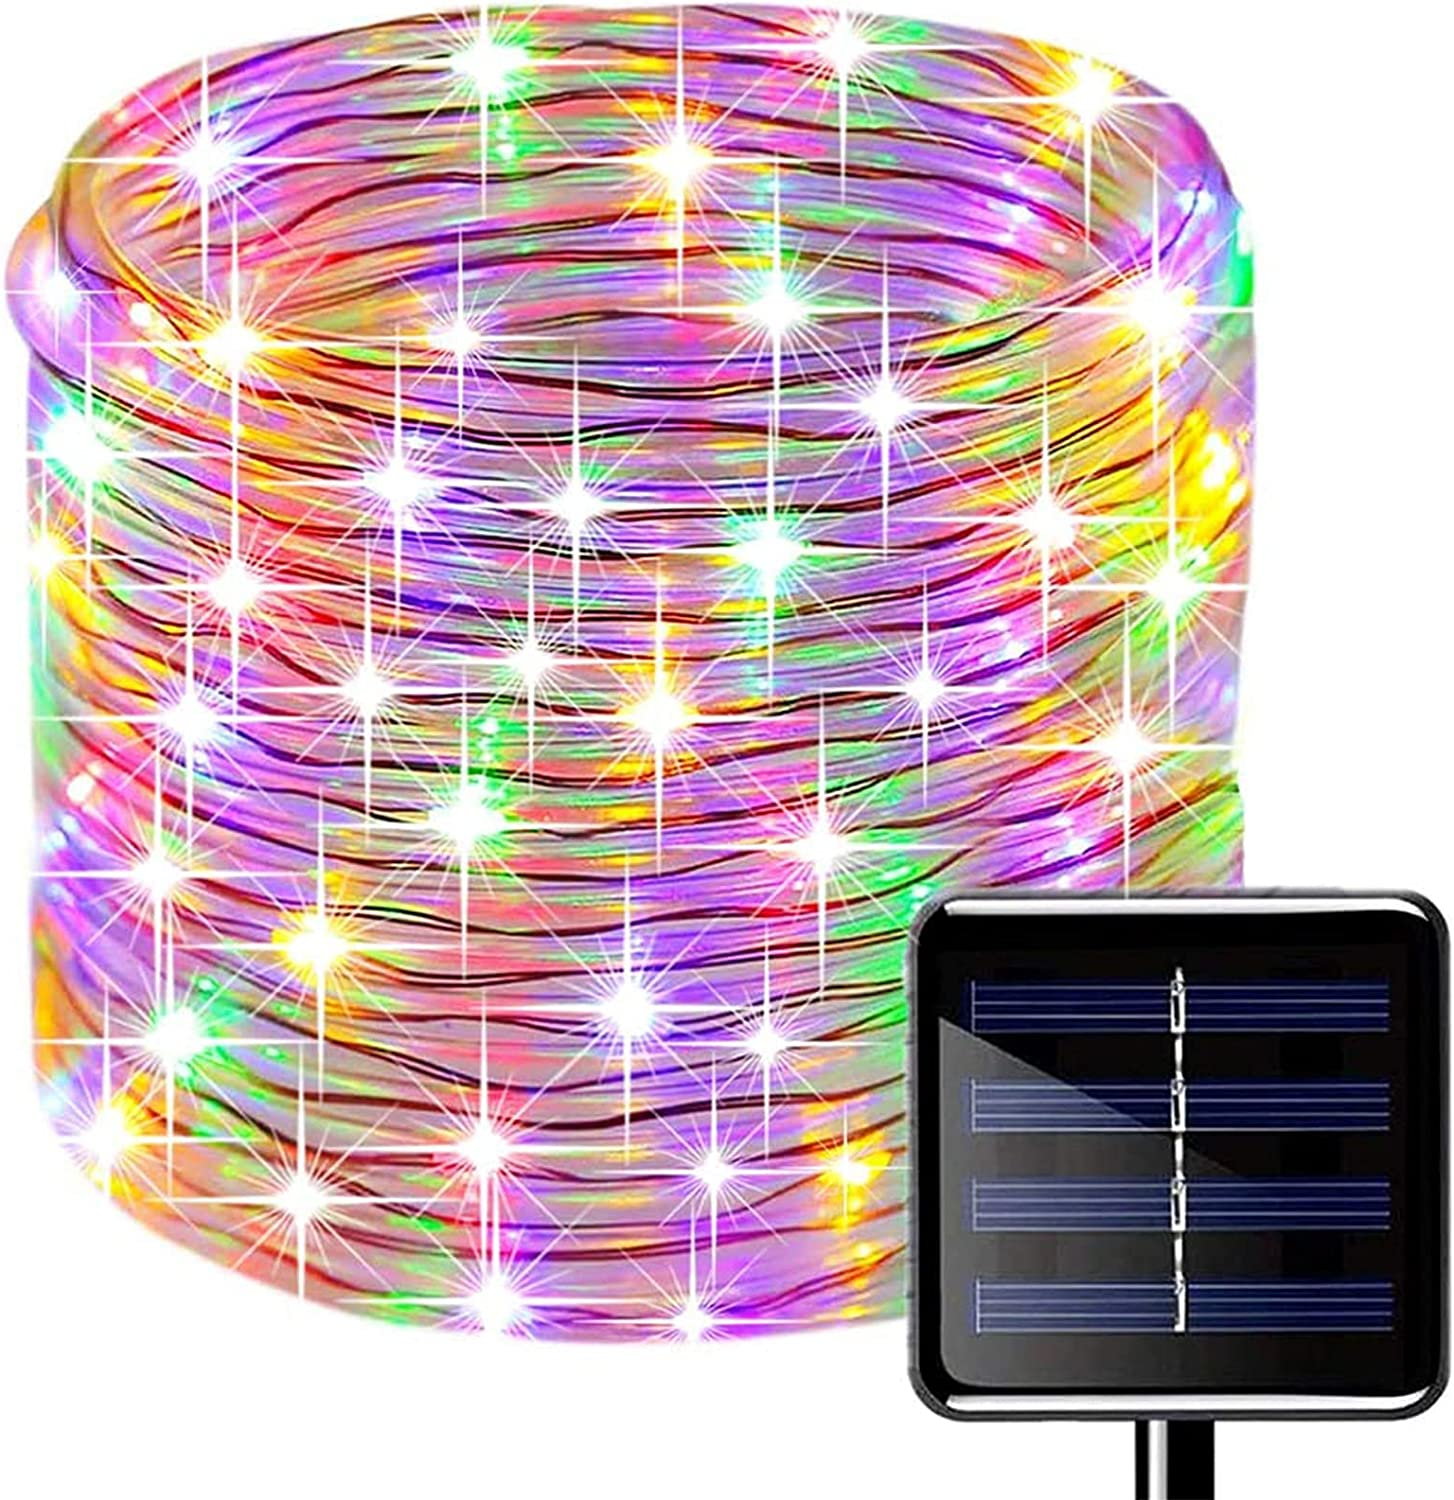 SUNSEATON Solar Rope Lights,200 LEDs 66ft/20M Waterproof Solar String Copper Wire Light,Outdoor Rope Lights for Garden Yard Path Fence Tree Wedding Party Decorative (Multicolor)